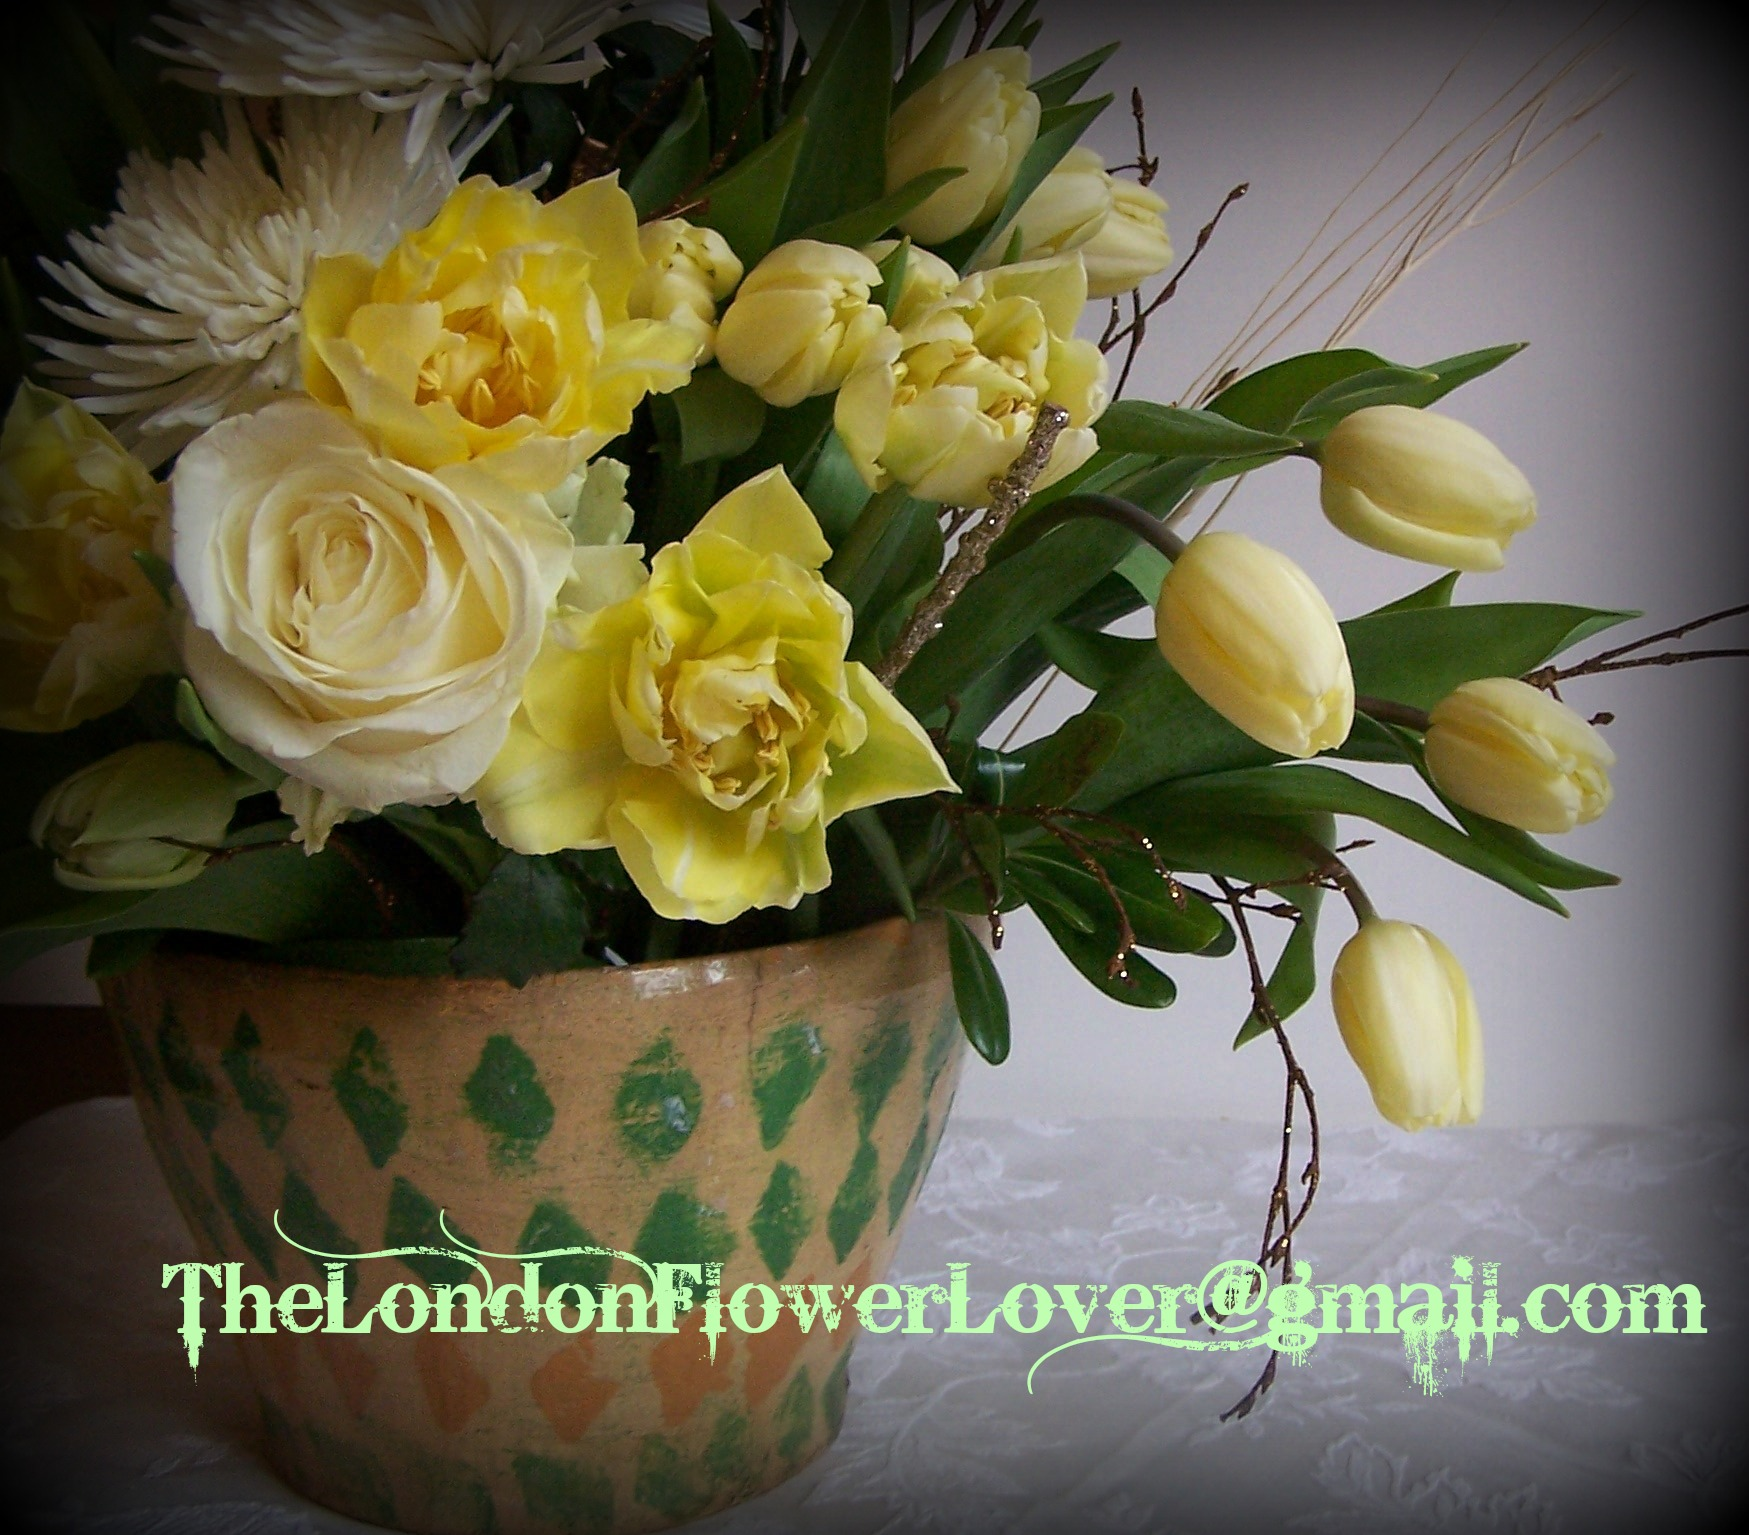 London Florists Suggestsspring Clean Your Clutter Give Thanks